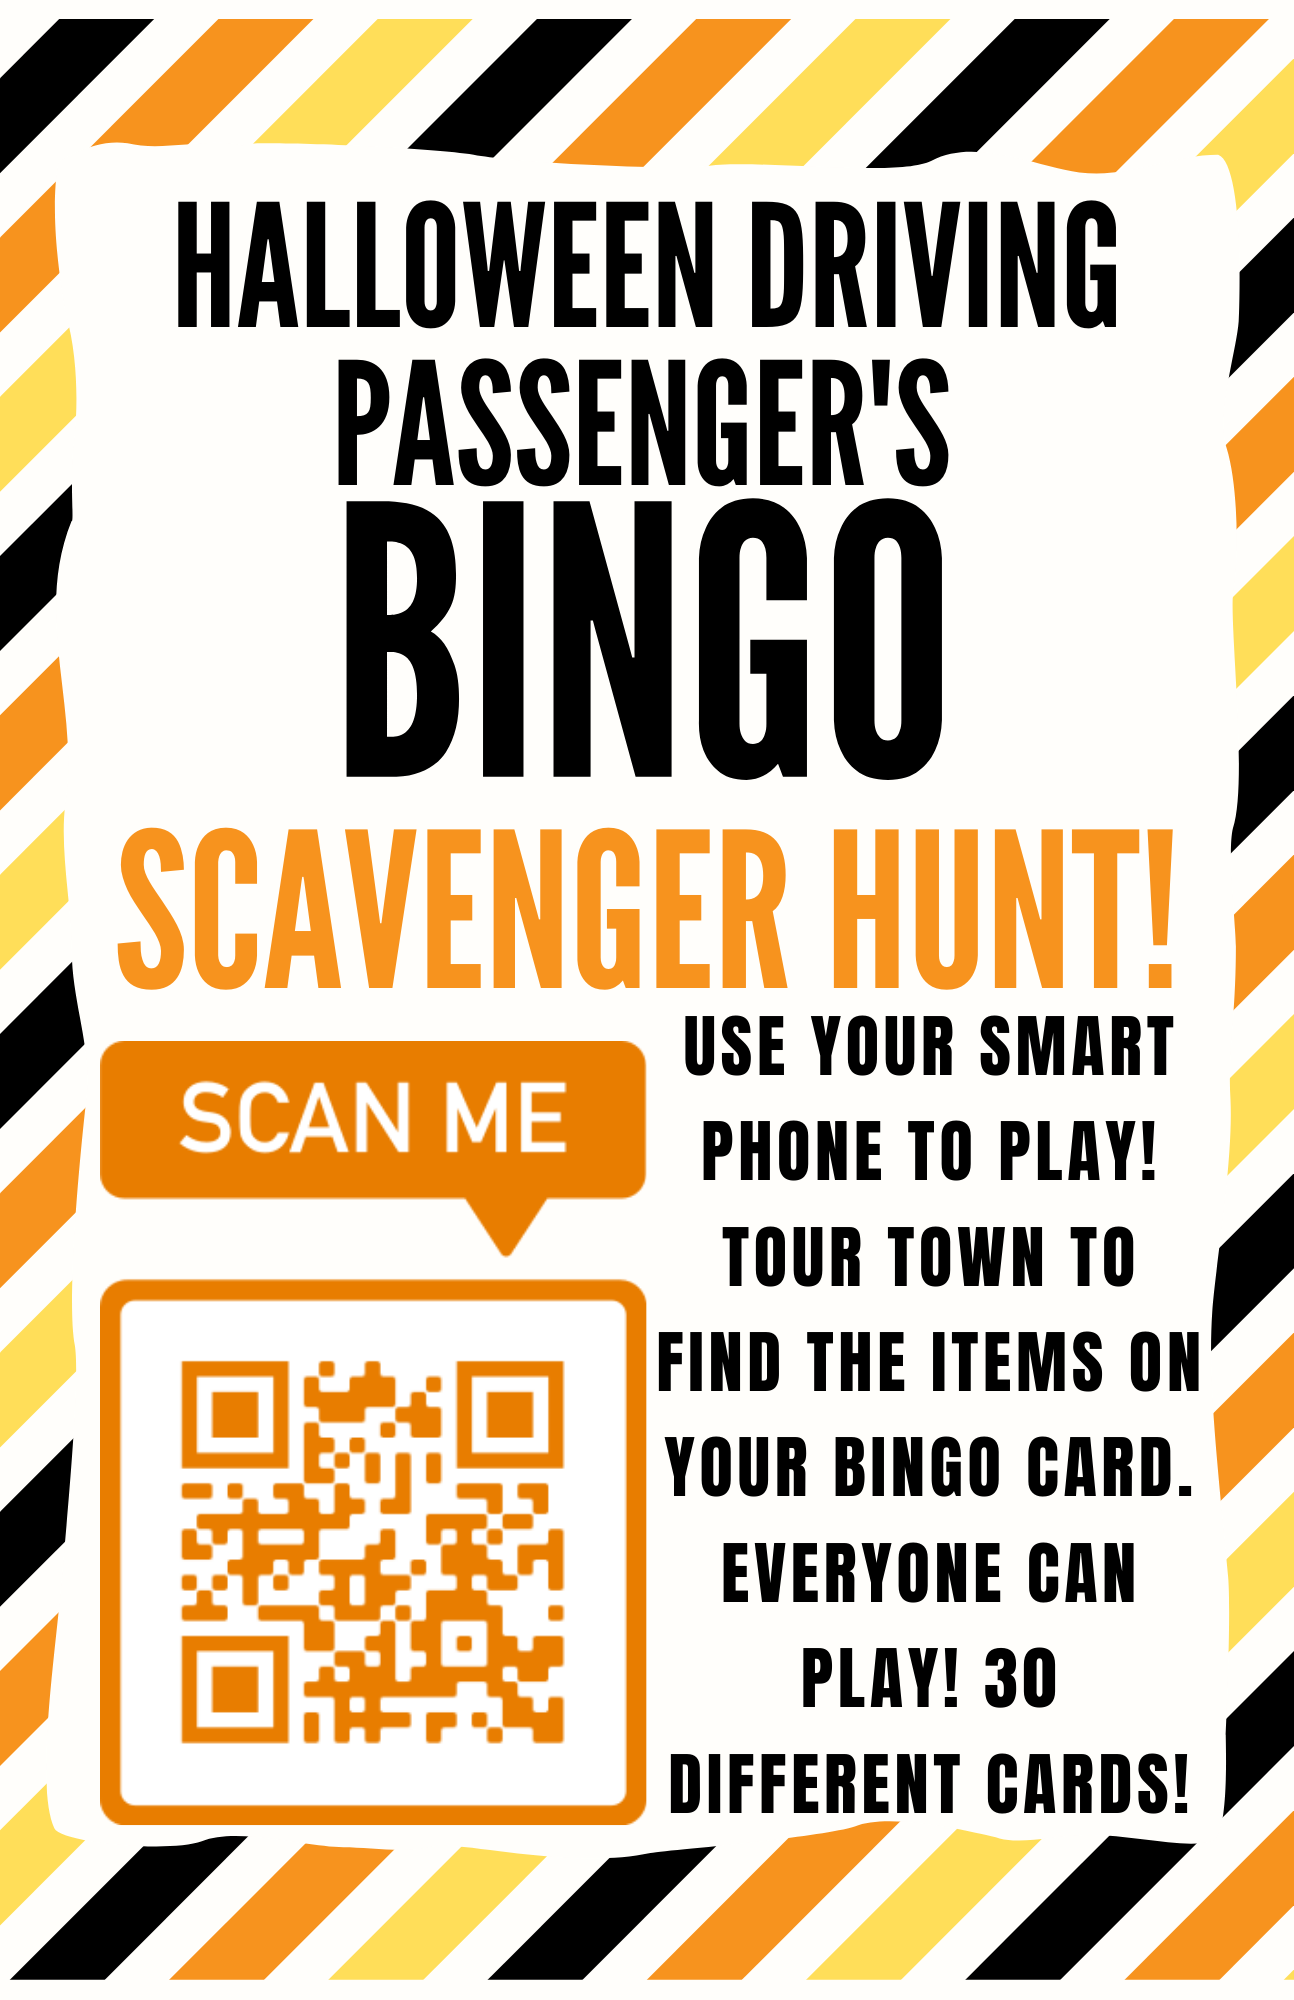 Halloween Driving Passenger's BINGO Scavenger Hunt! Use your smart phone to play! Tour town to find the items on your bingo card. Everyone can play! 30 Different Cards! Scan QR Code.